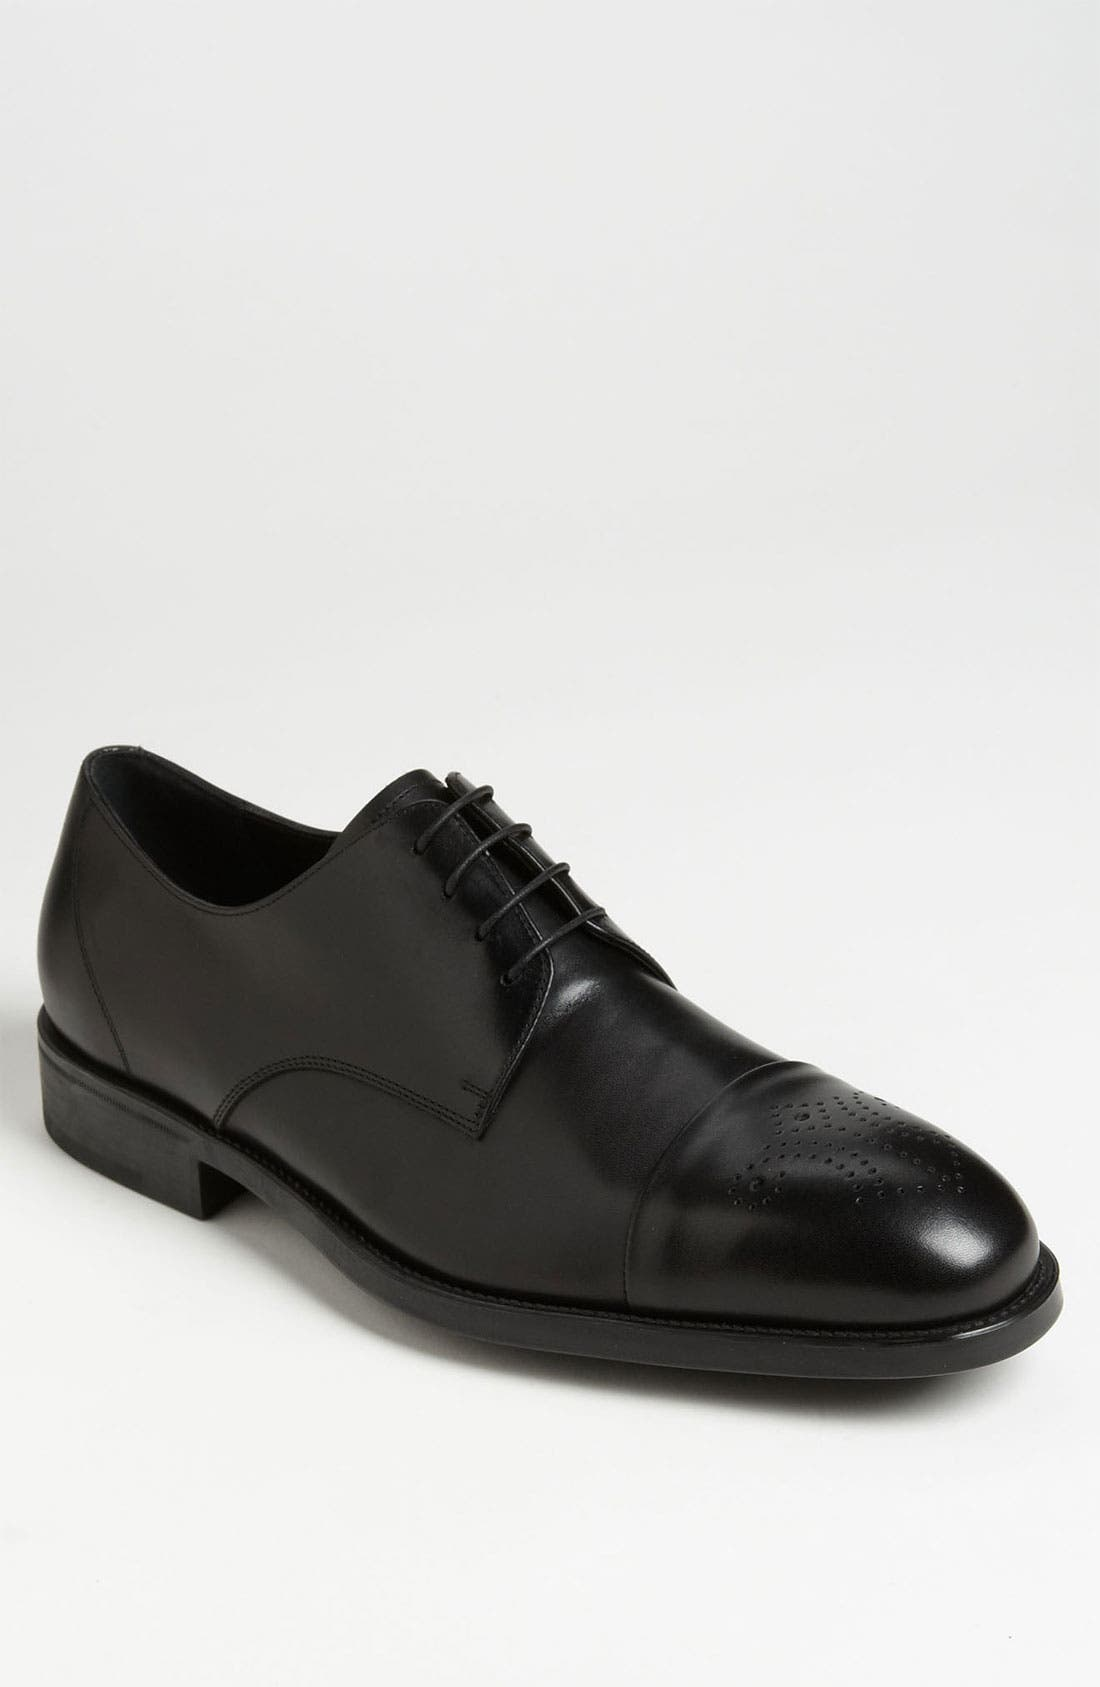 Alternate Image 1 Selected - Salvatore Ferragamo 'Aramix' Cap Toe Derby